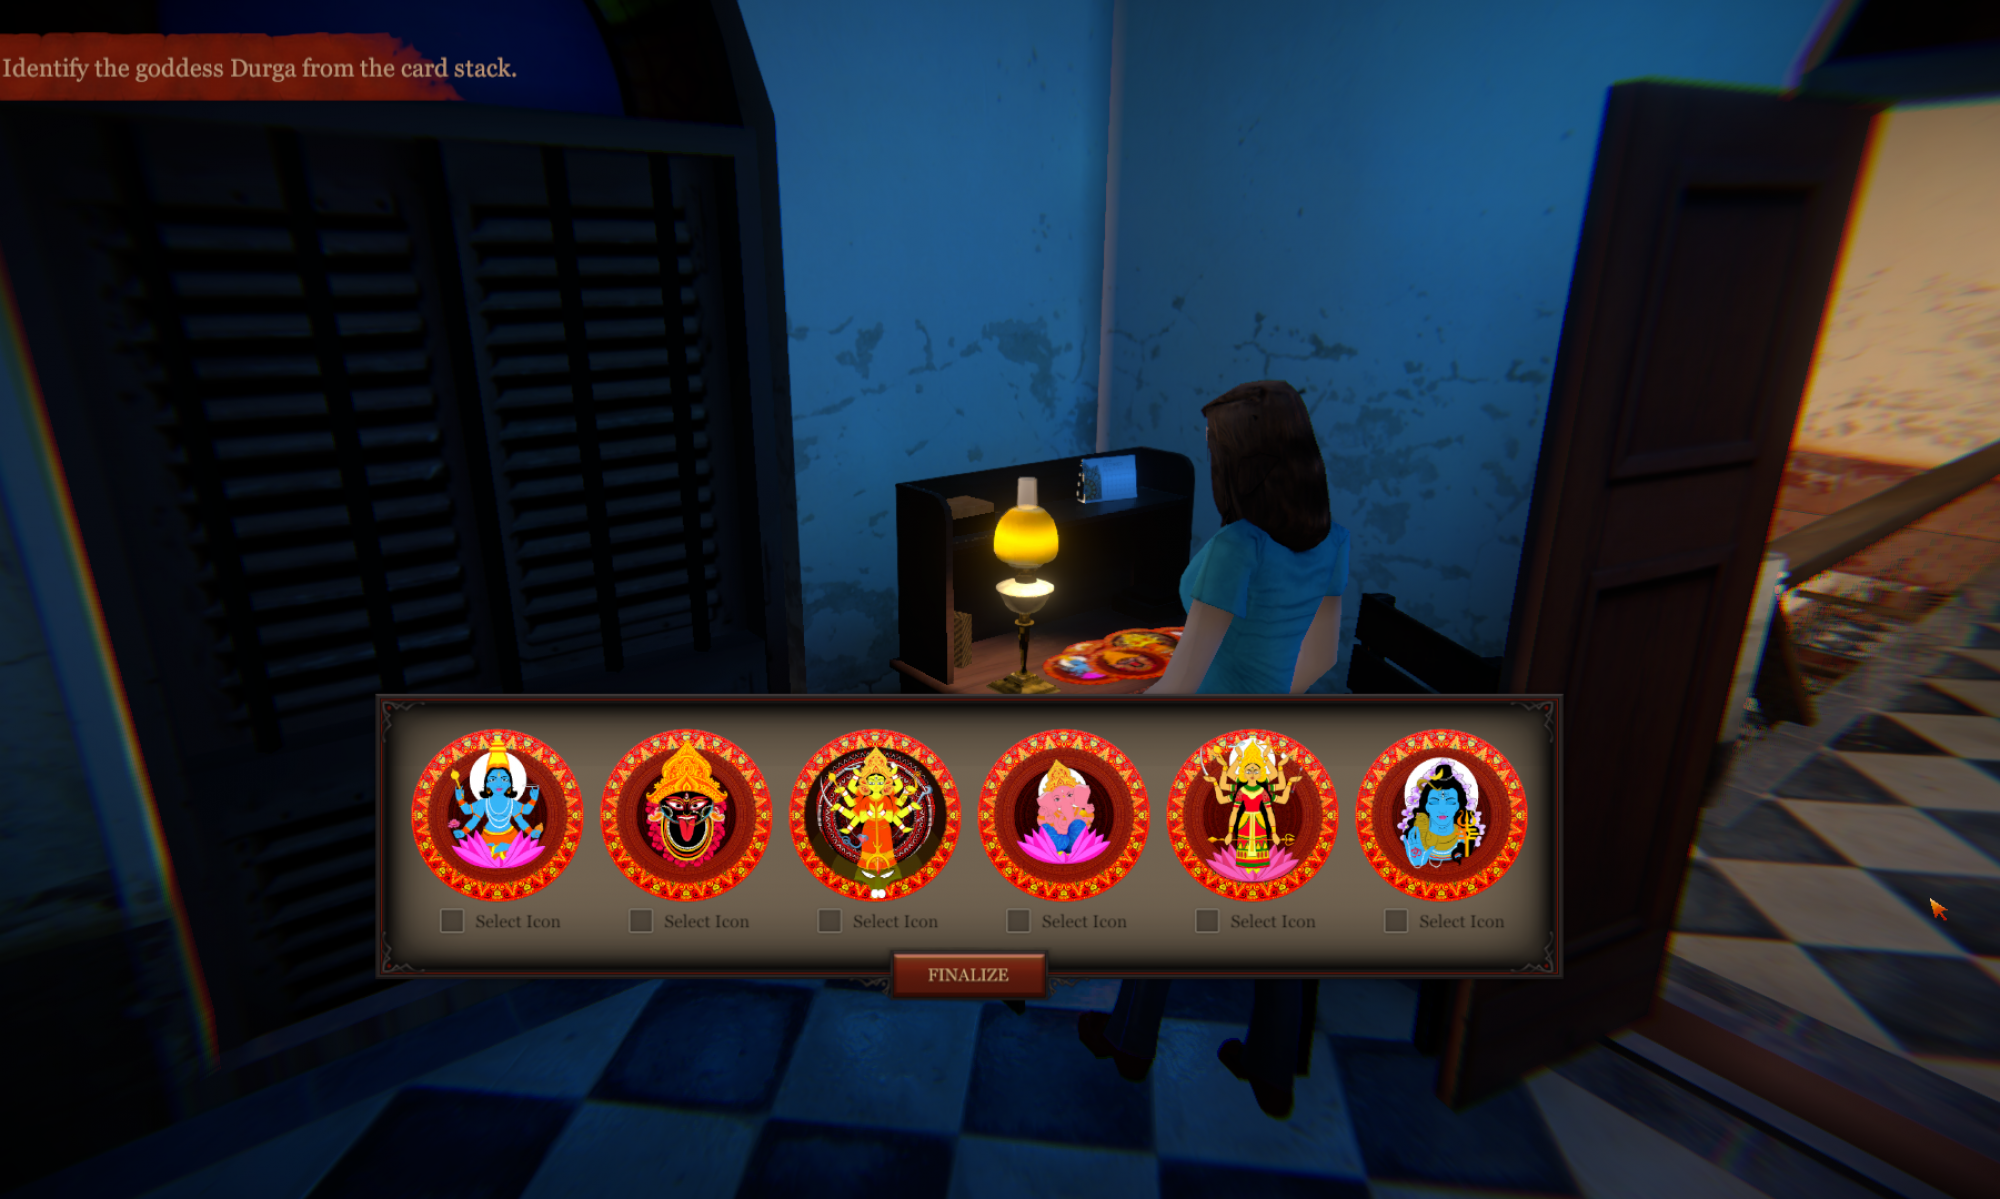 The Durga Puja Mystery. An Educational Video Game